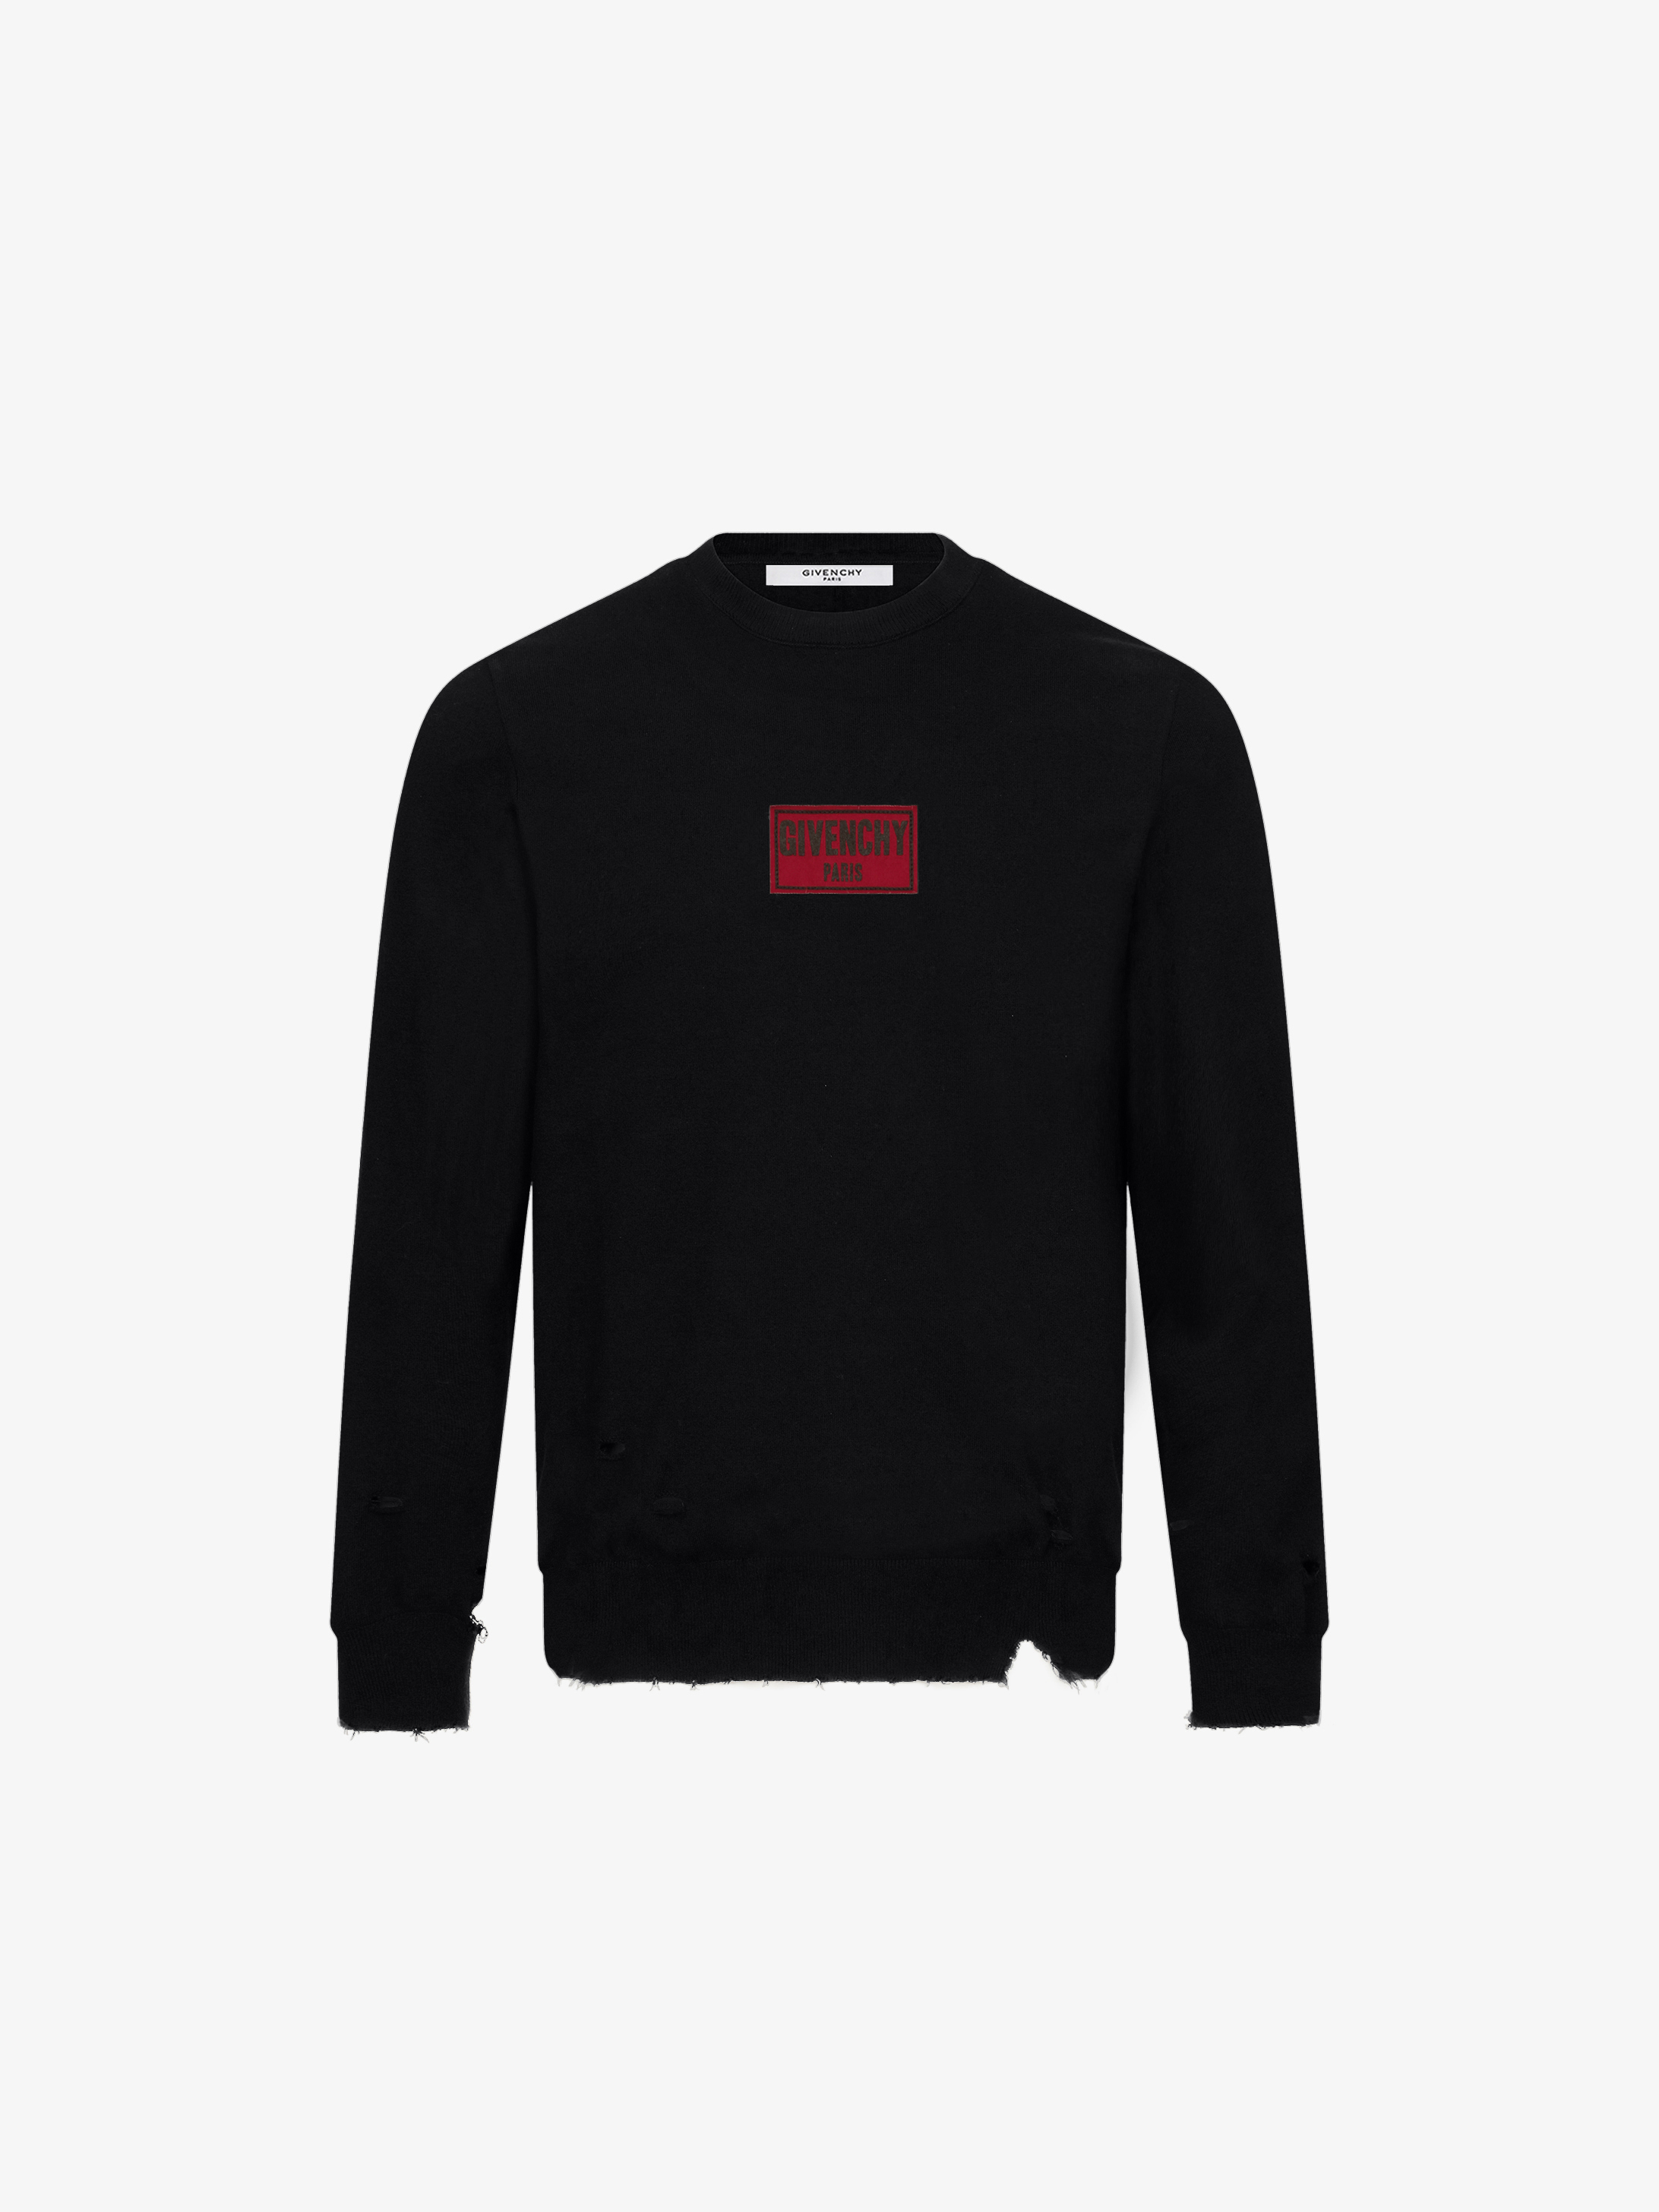 GIVENCHY PARIS patch destroyed jumper